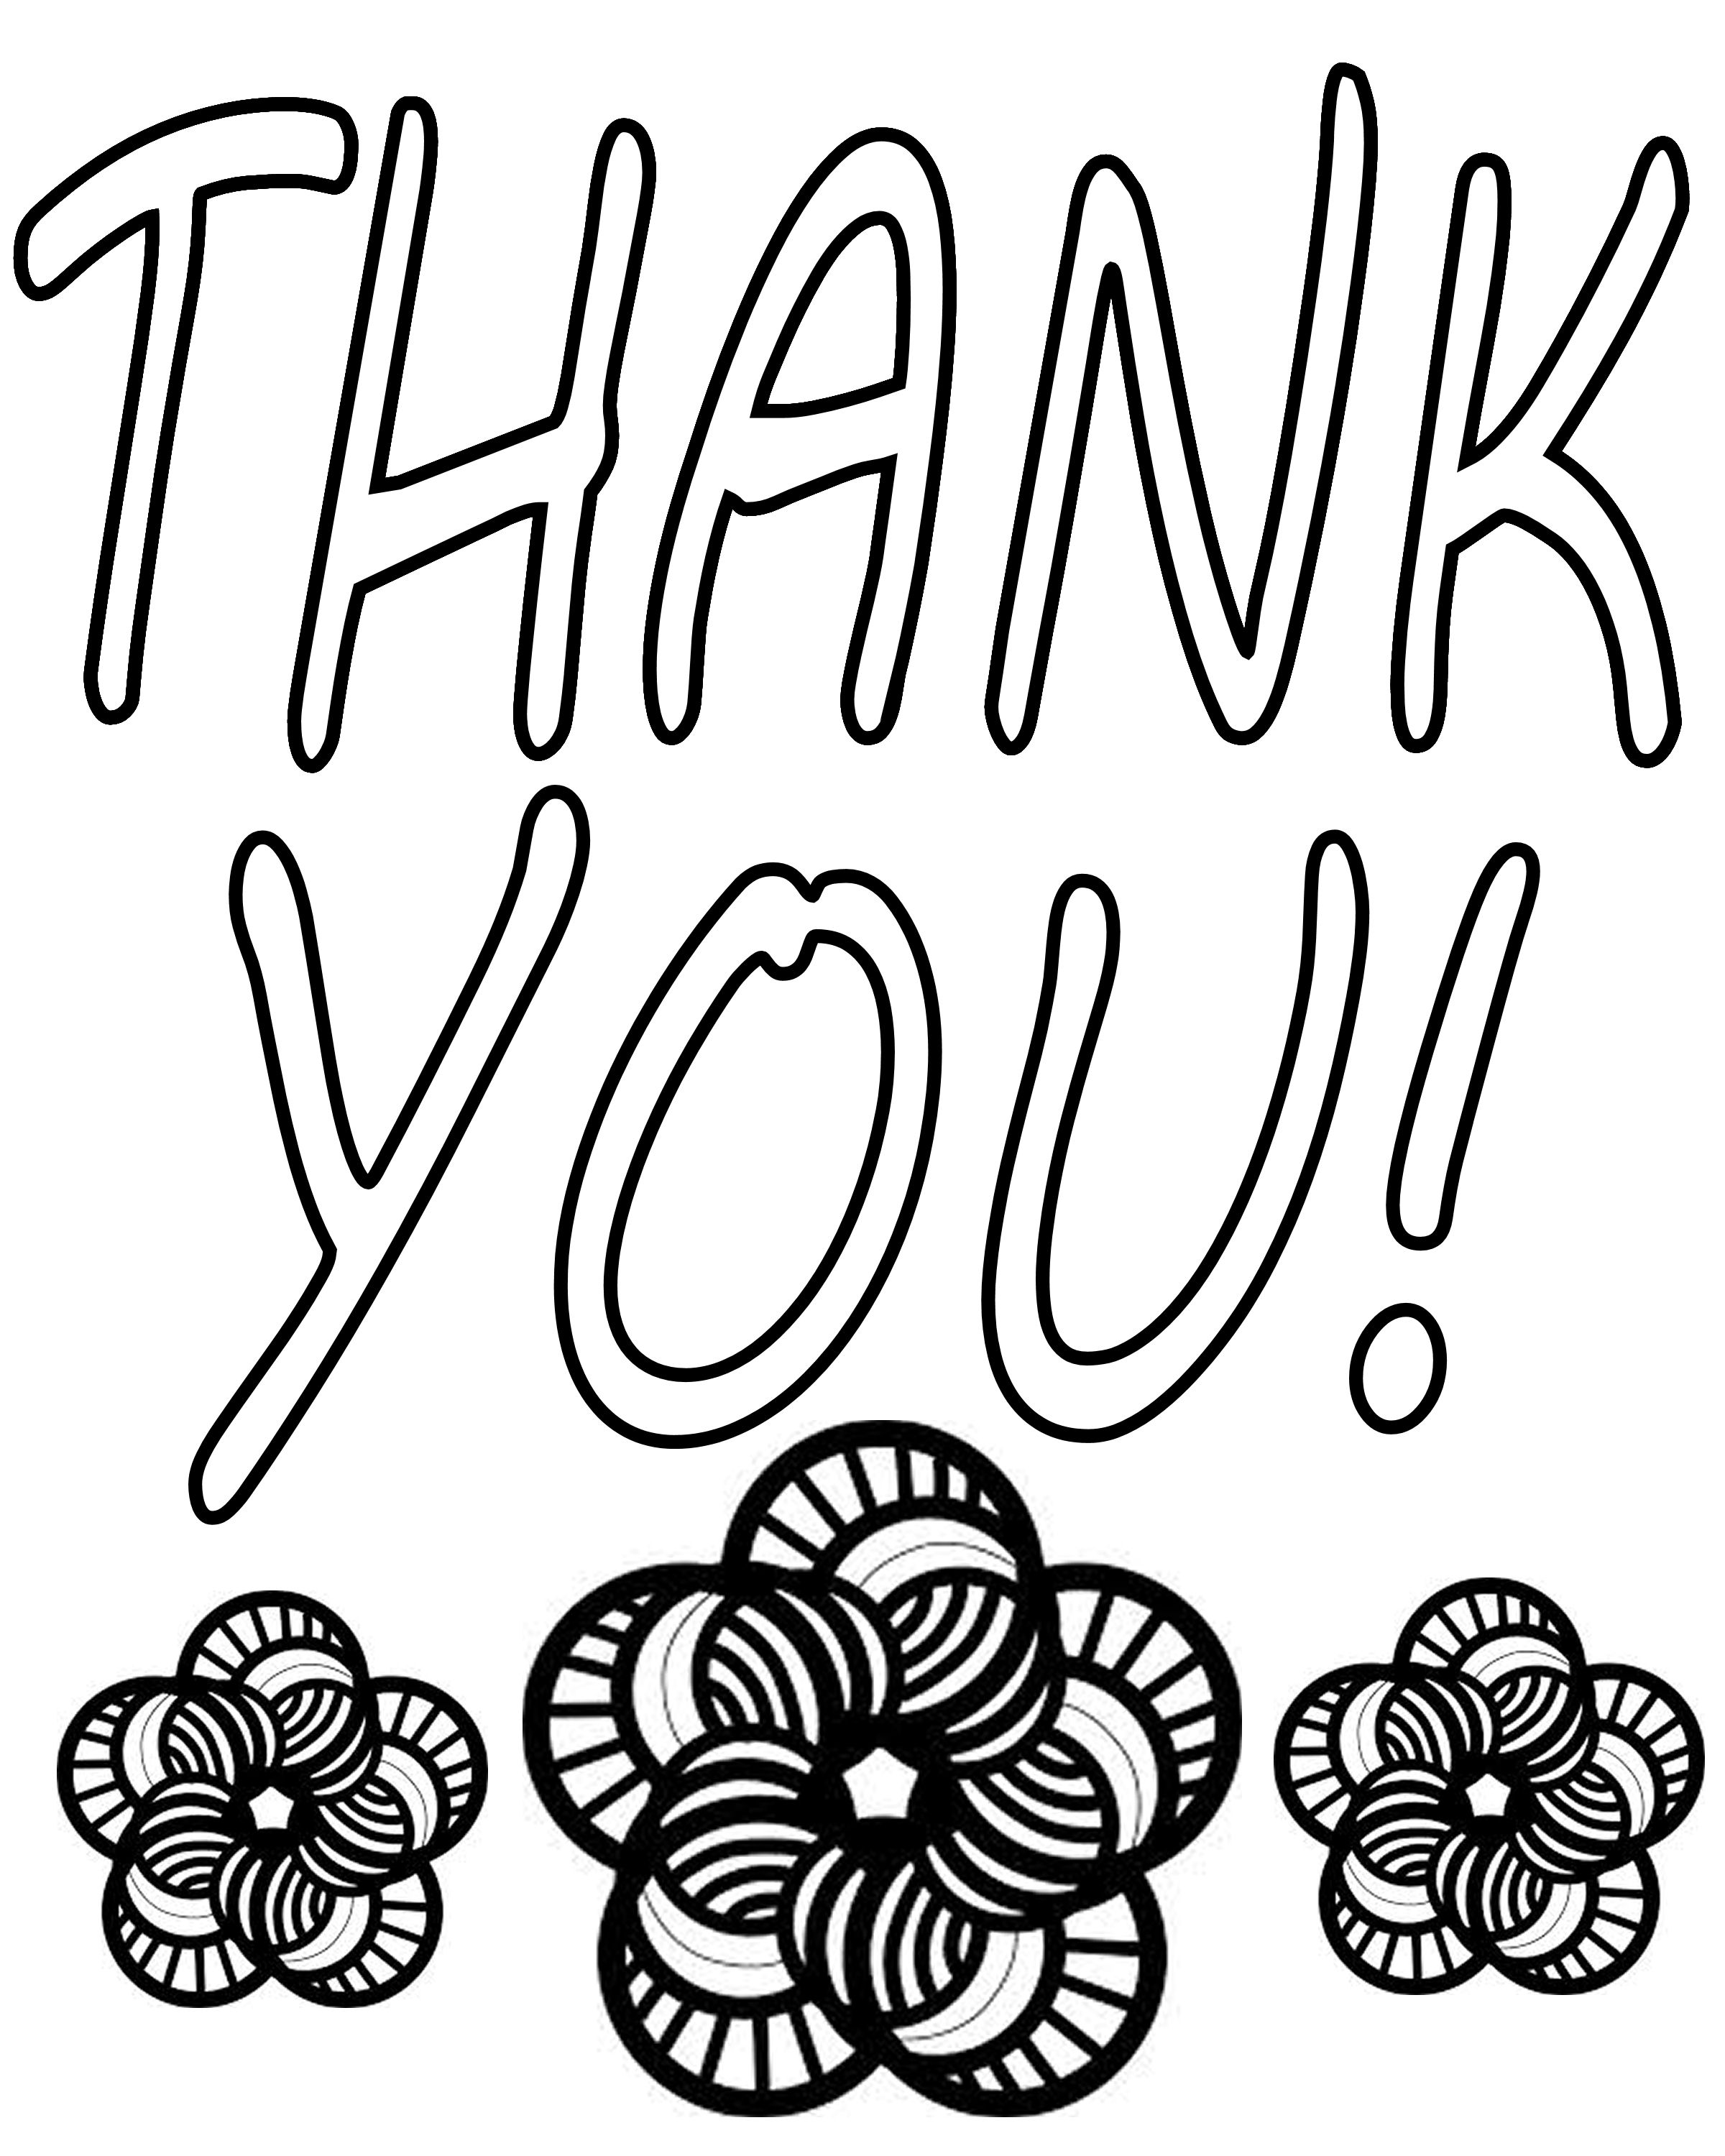 free thank you coloring pages thank you coloring pages free printable online thank you pages coloring thank free you